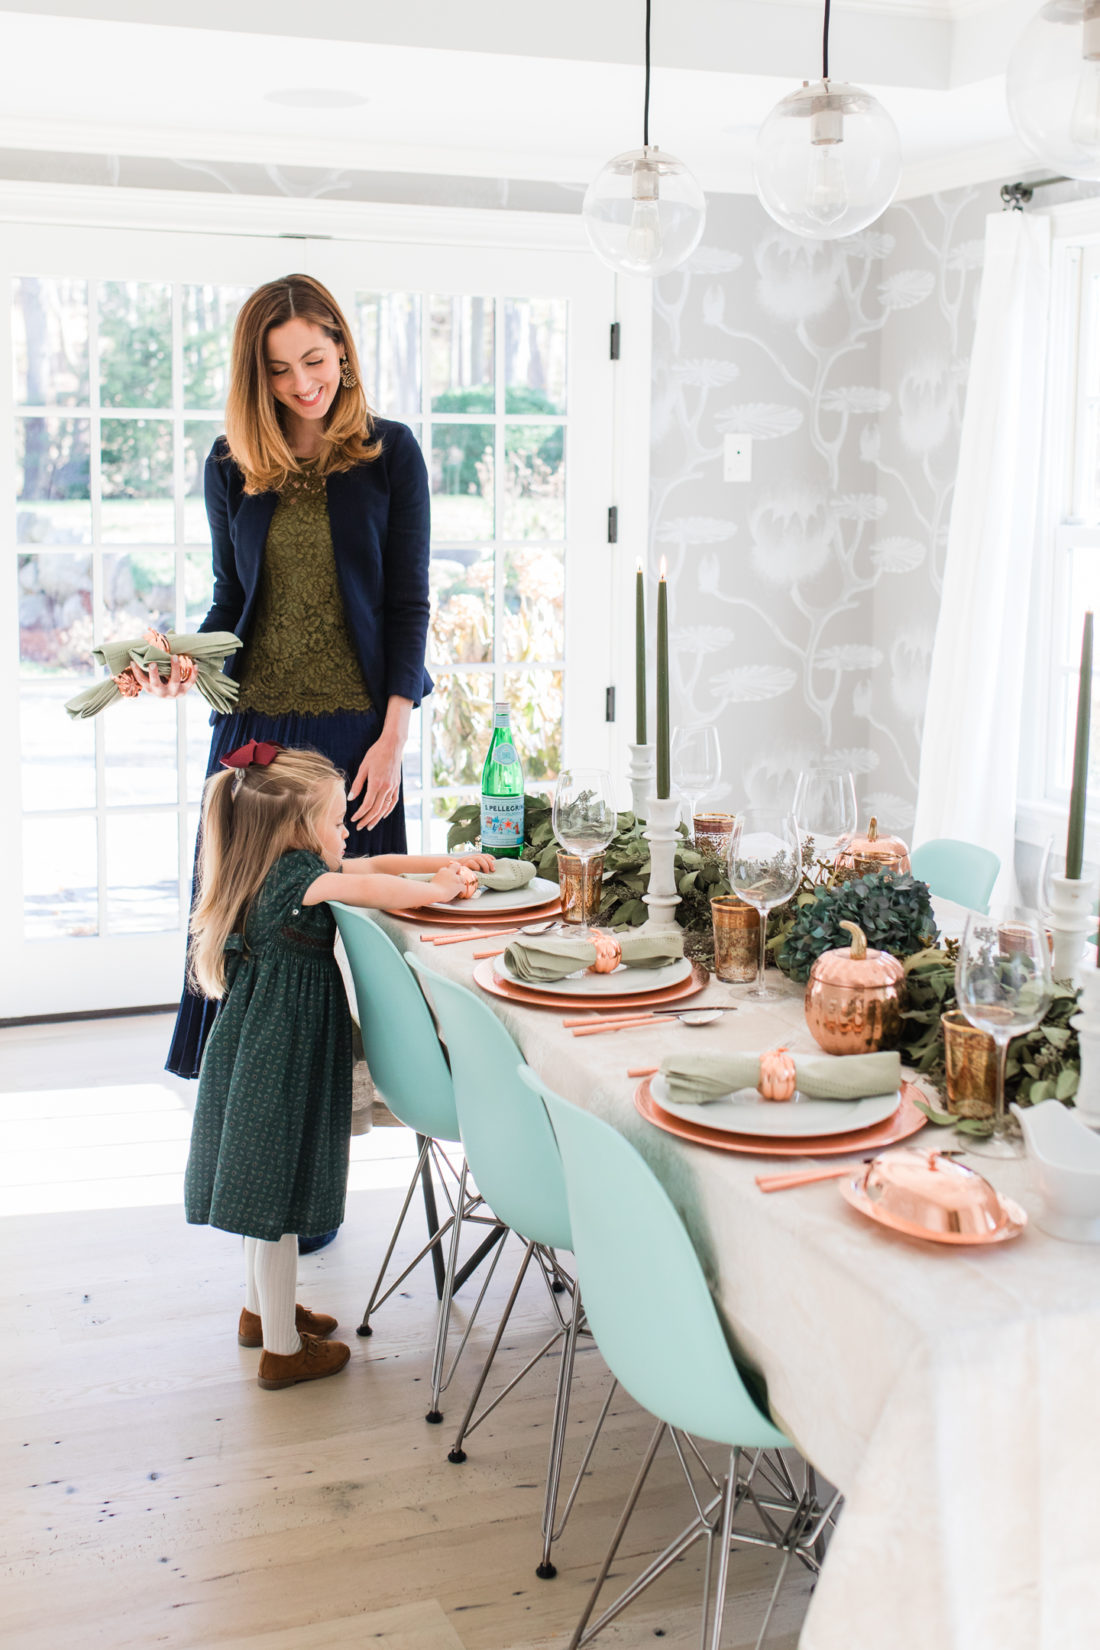 Marlowe Martino helps her Mom set the Thanksgiving table wearing a green velvet smocked party dress